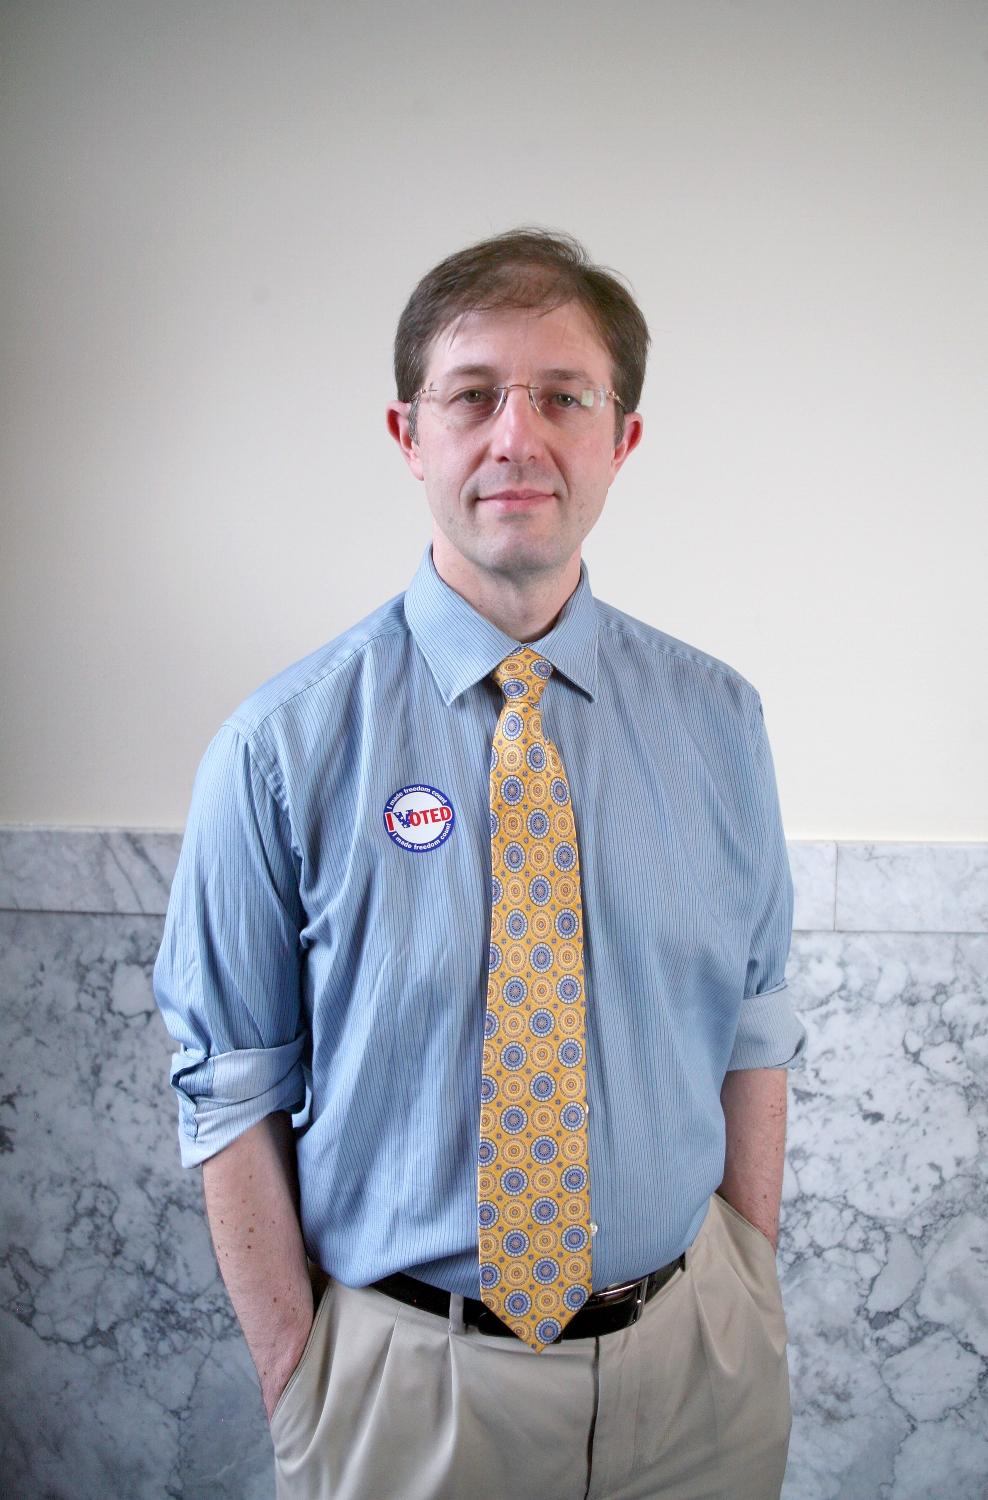 Jesse Kiehl, Legislative Aide and Juneau City Assembly Member